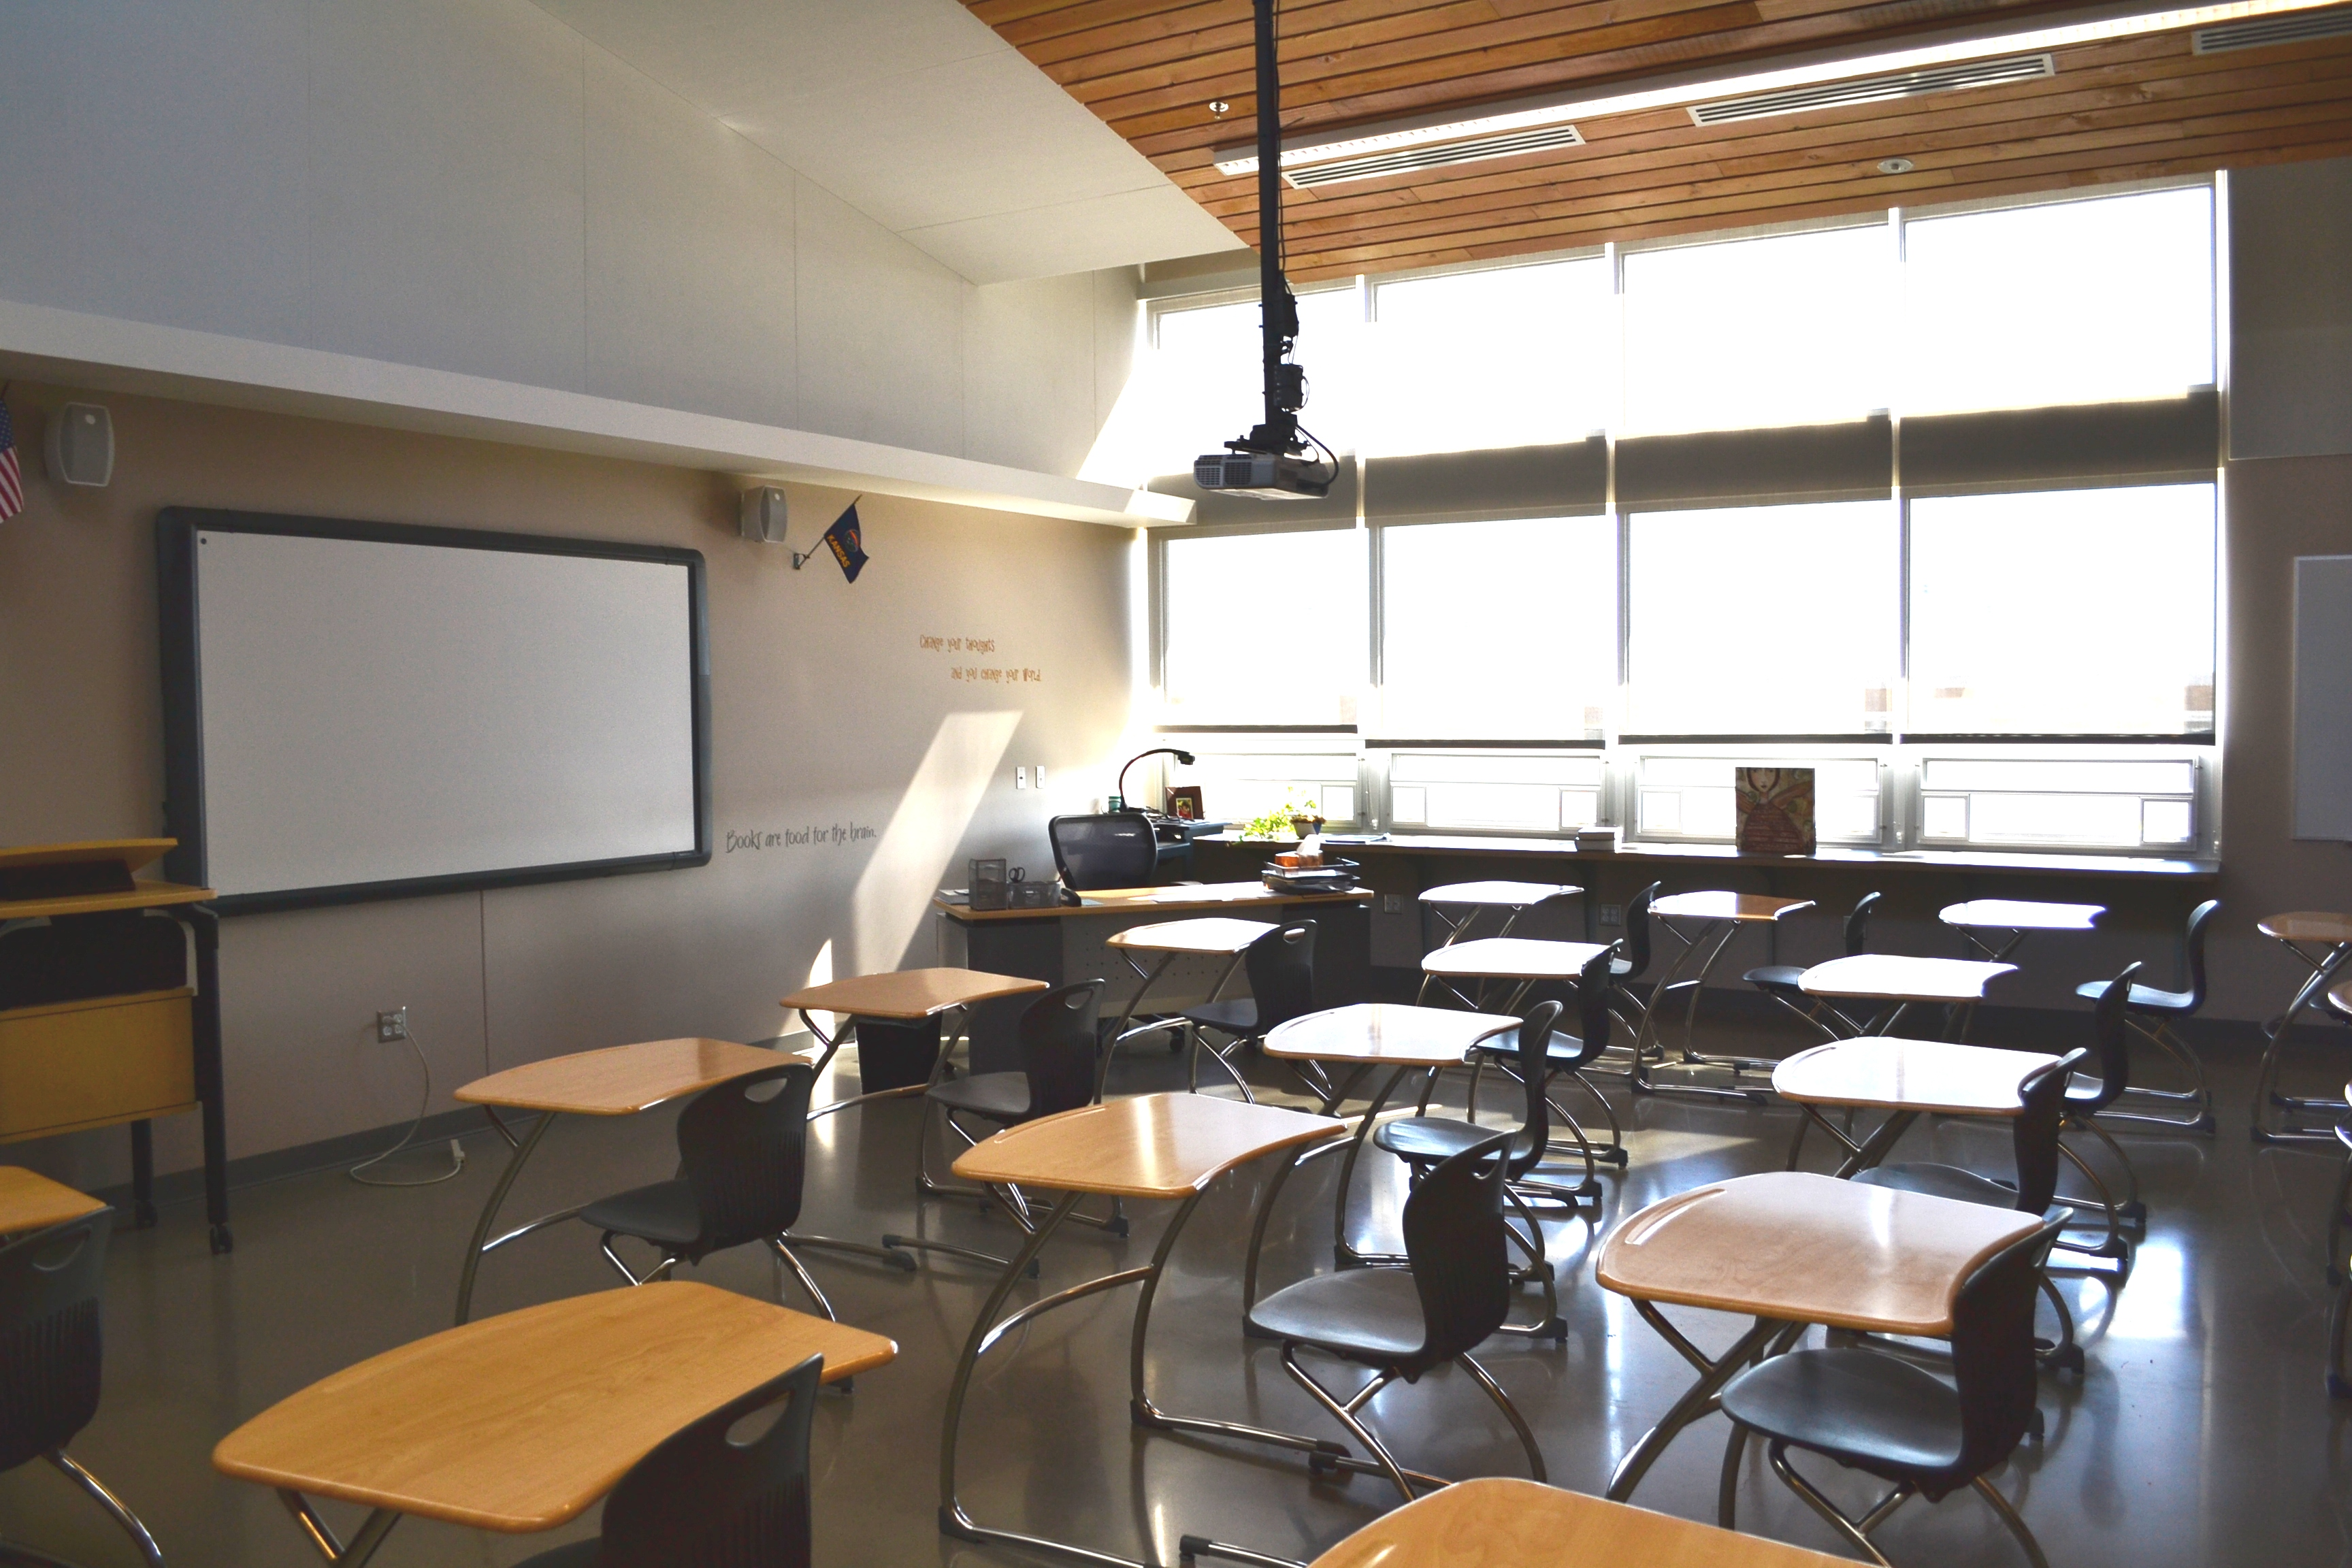 Modern Classroom Furniture ~ Designing green schools that advance public health